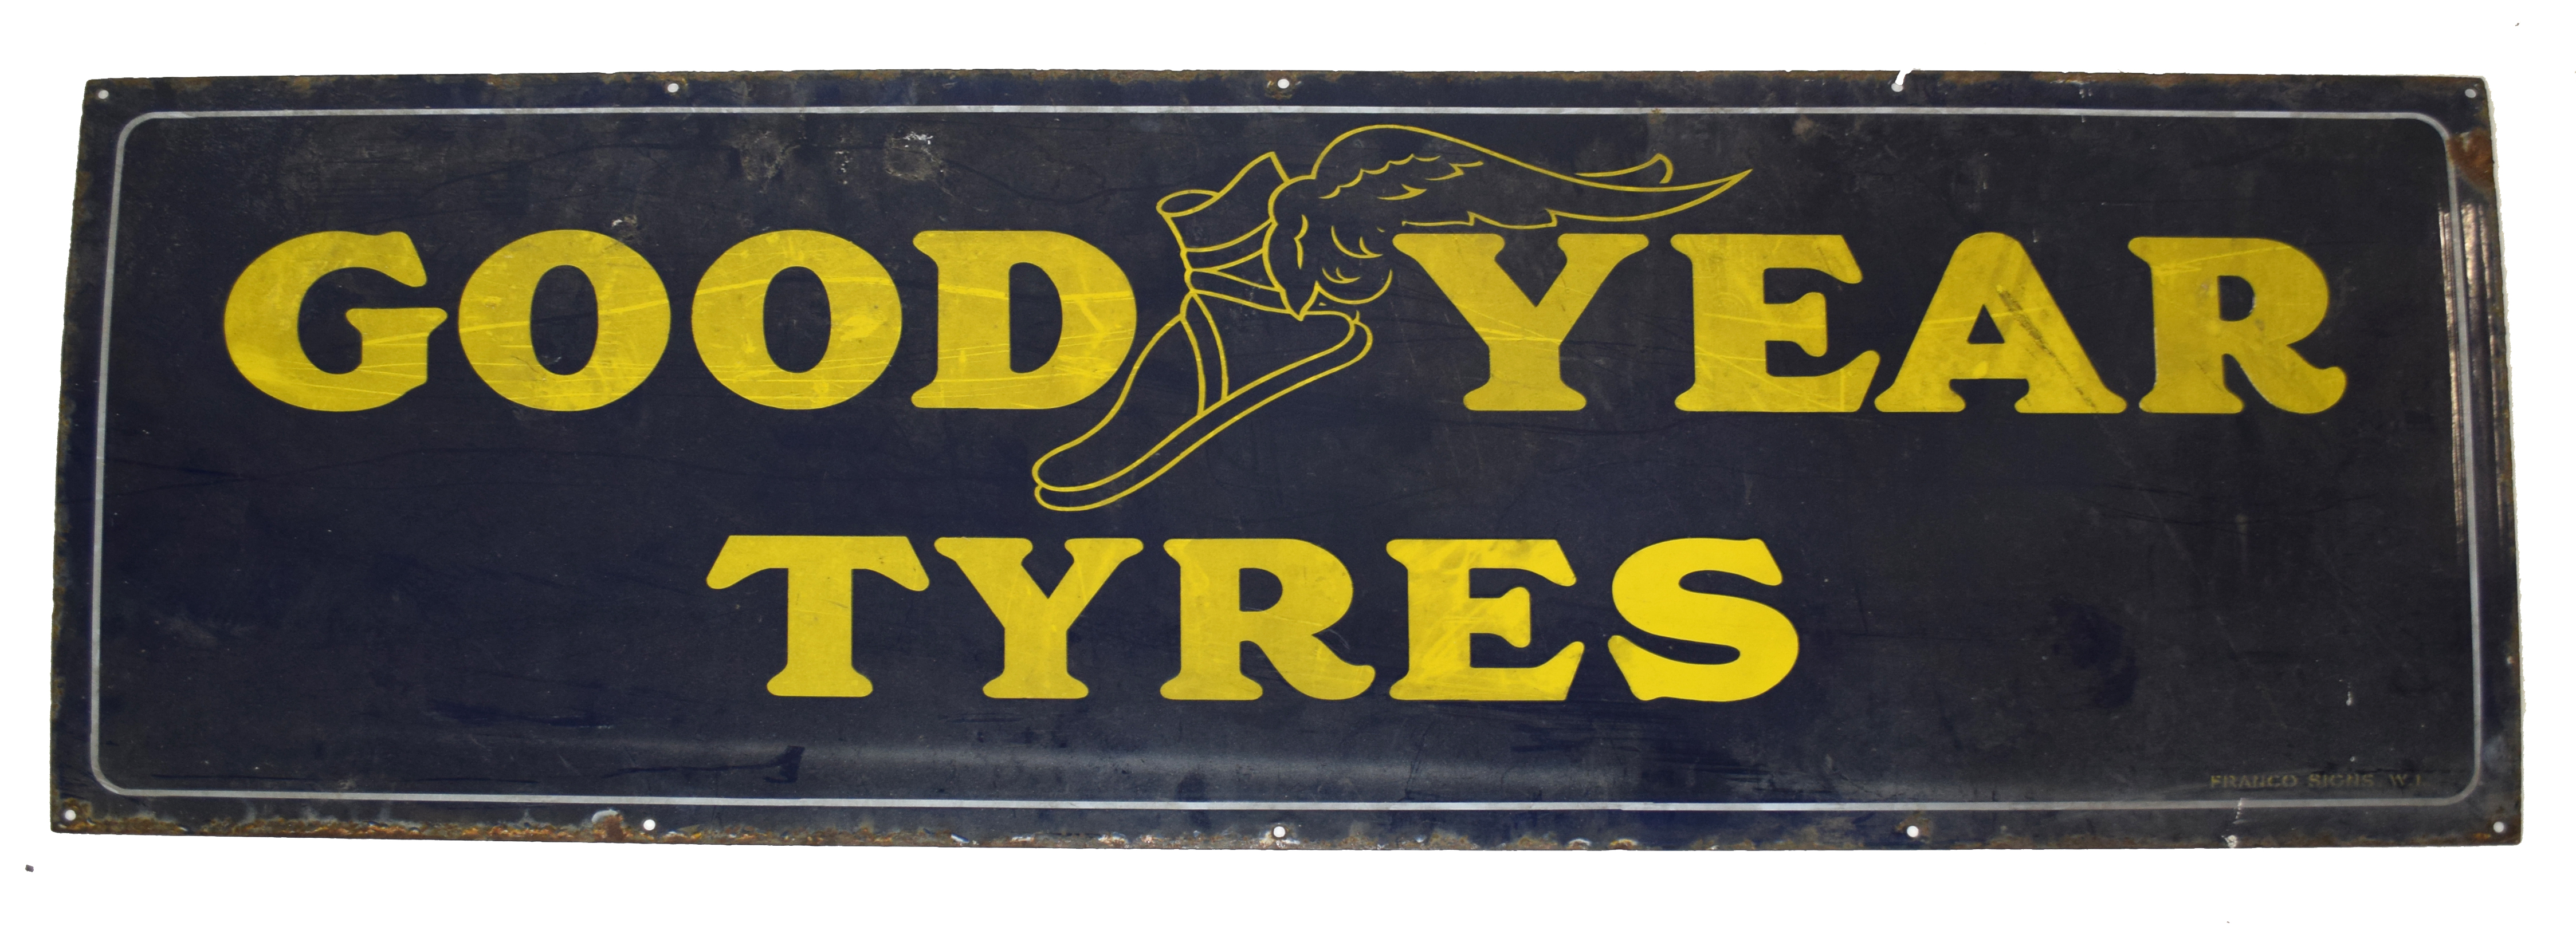 Vintage enamel advertising sign for Goodyear Tyres, yellow lettering on a blue background 153cm